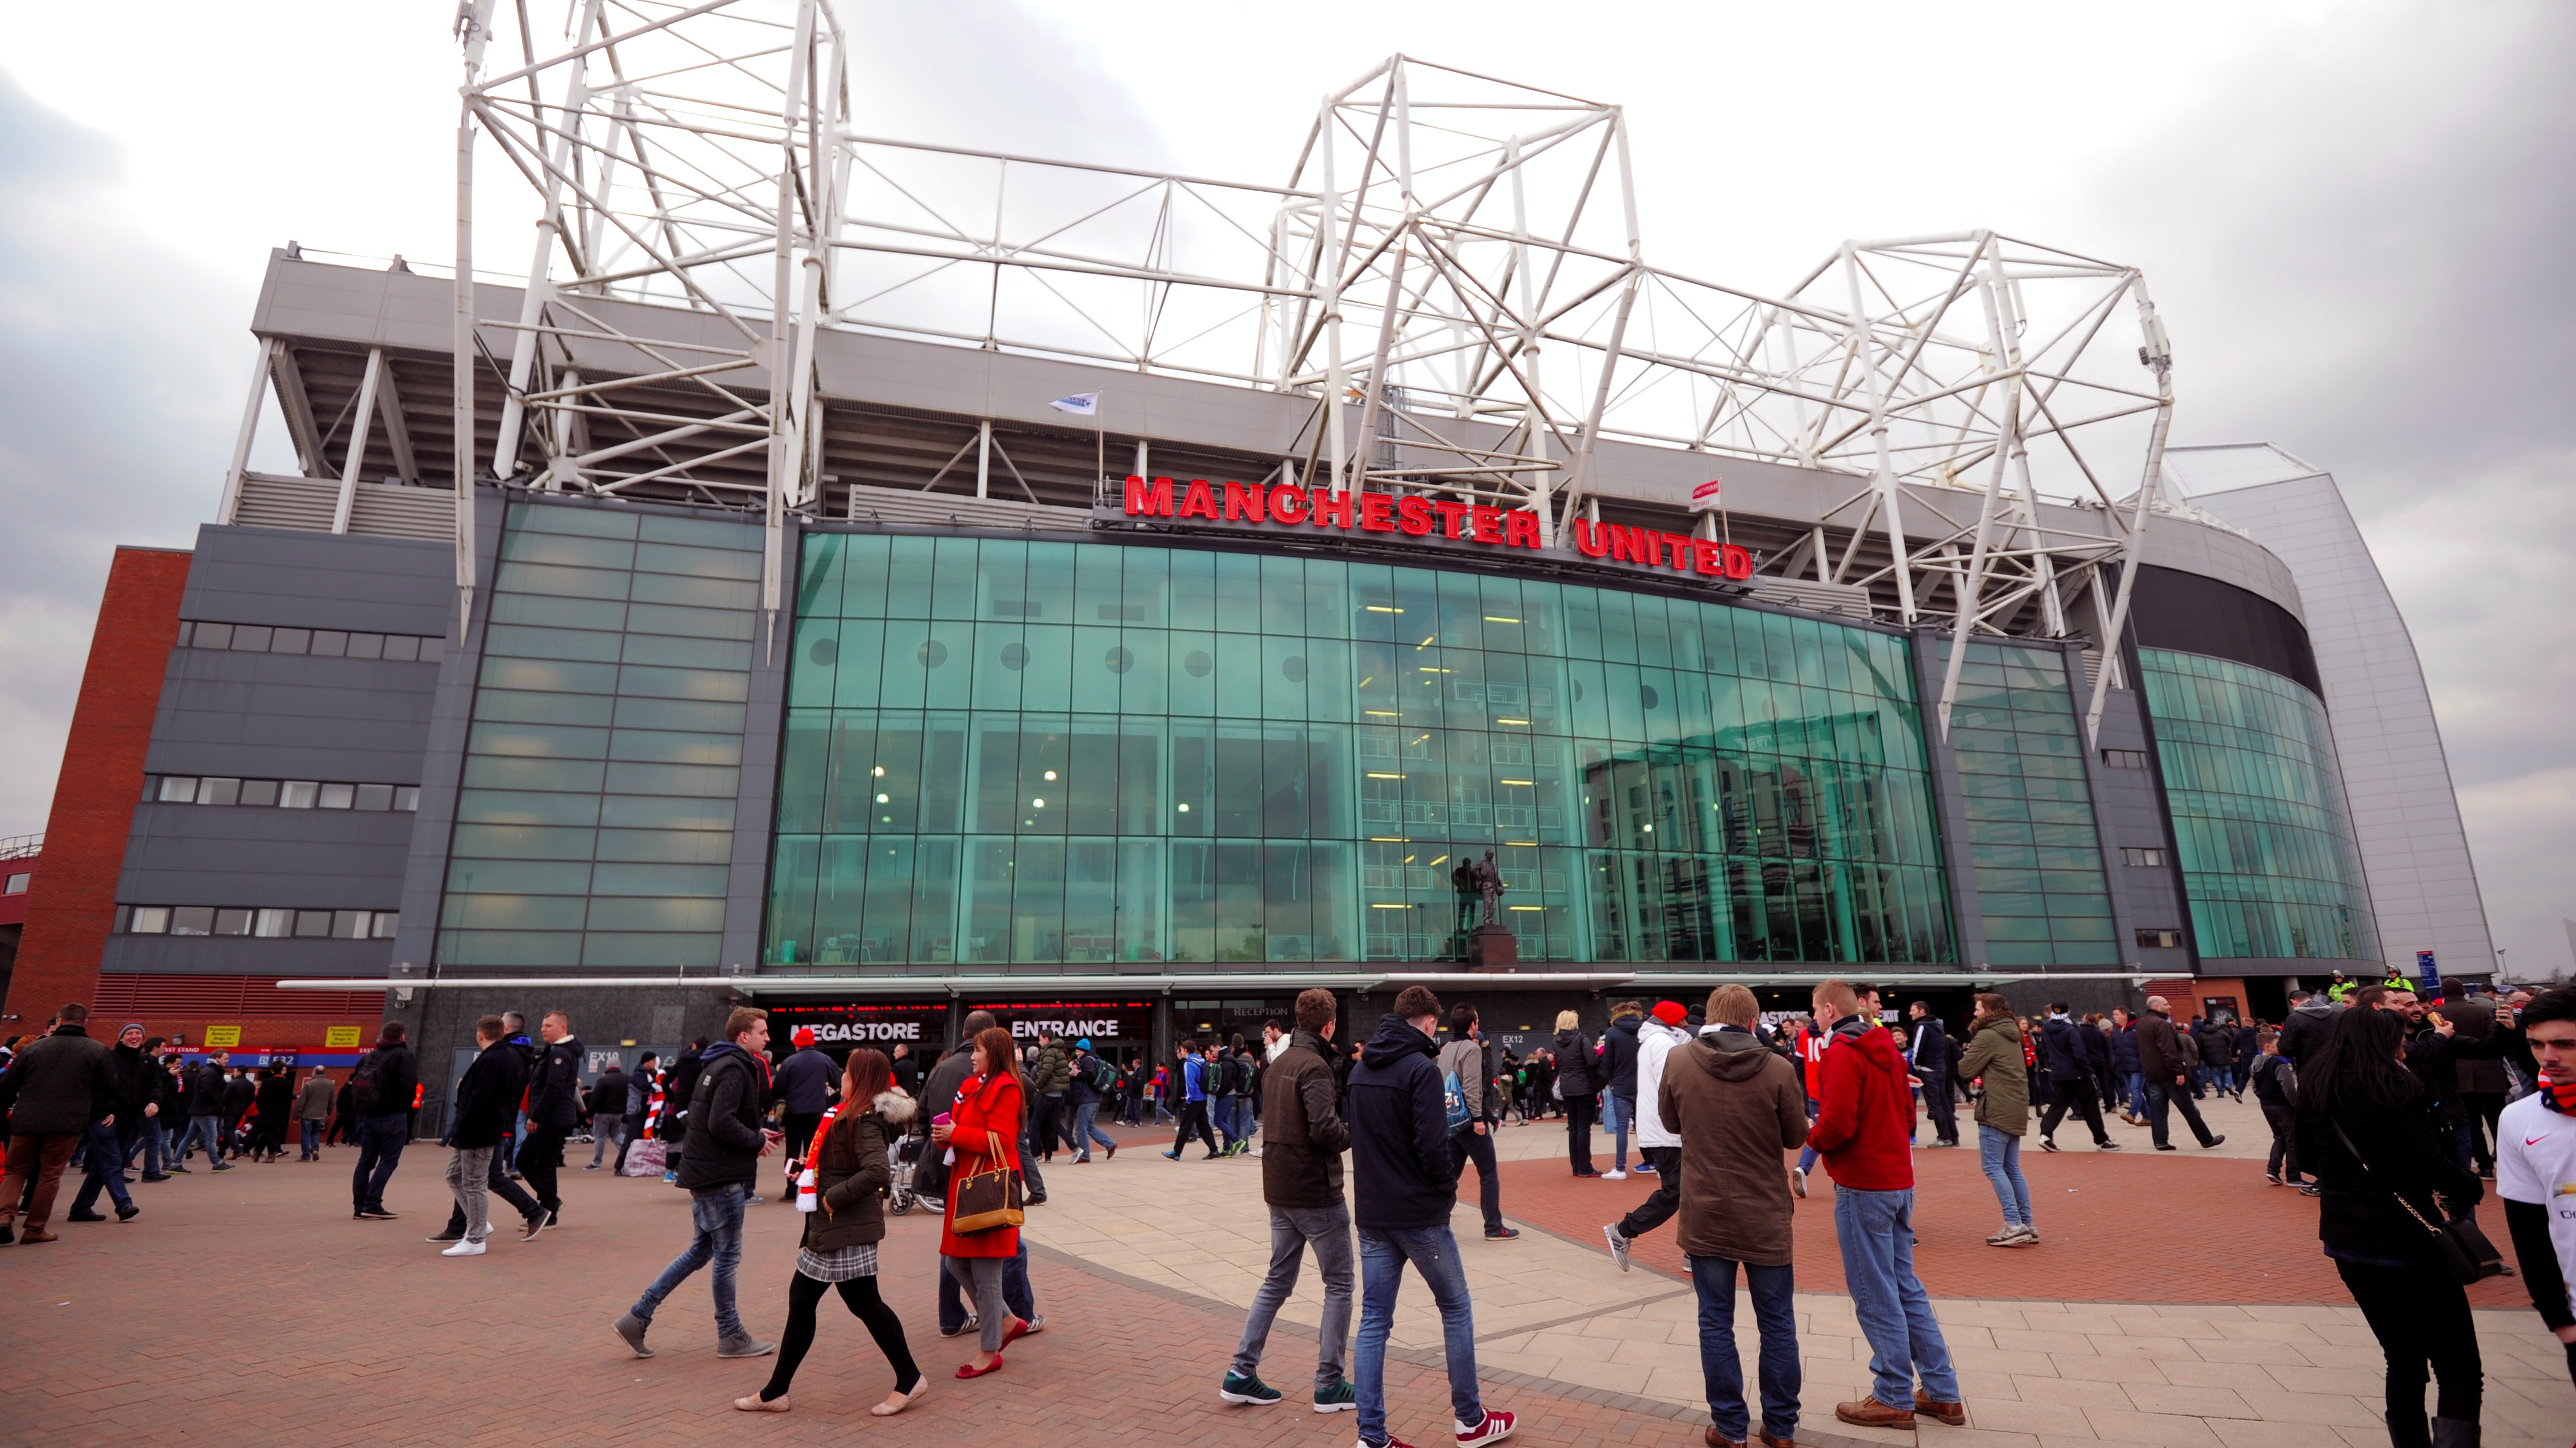 police investigate city fan 39 s chant about munich air disaster granada itv news. Black Bedroom Furniture Sets. Home Design Ideas